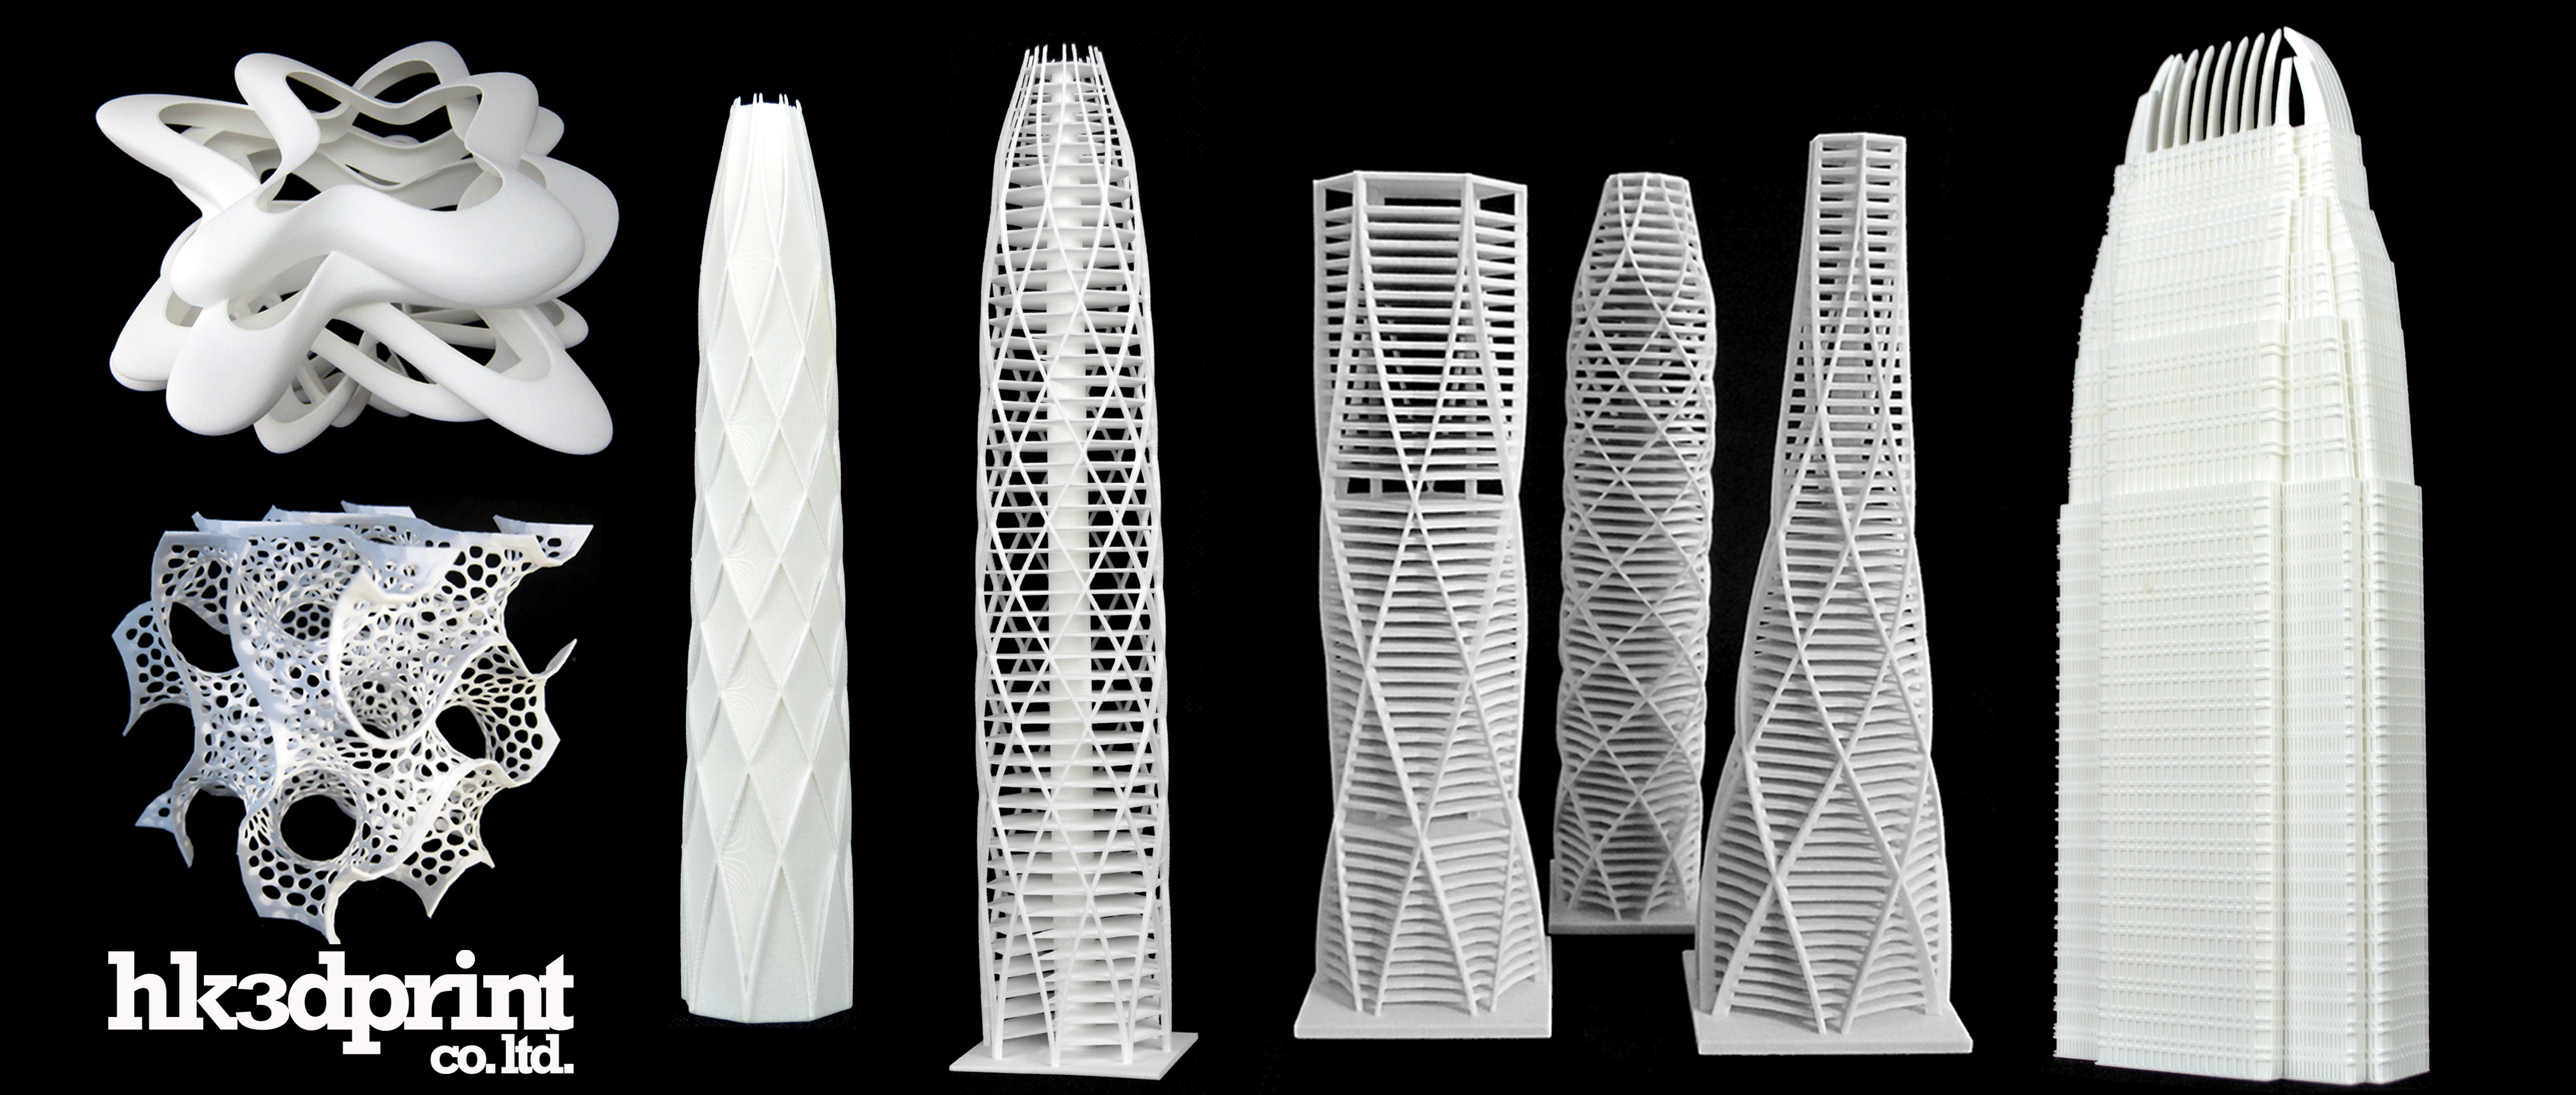 architectural engineering models. 3D Printed Tower Designs Architectural Sectional Model Design Engineering Models